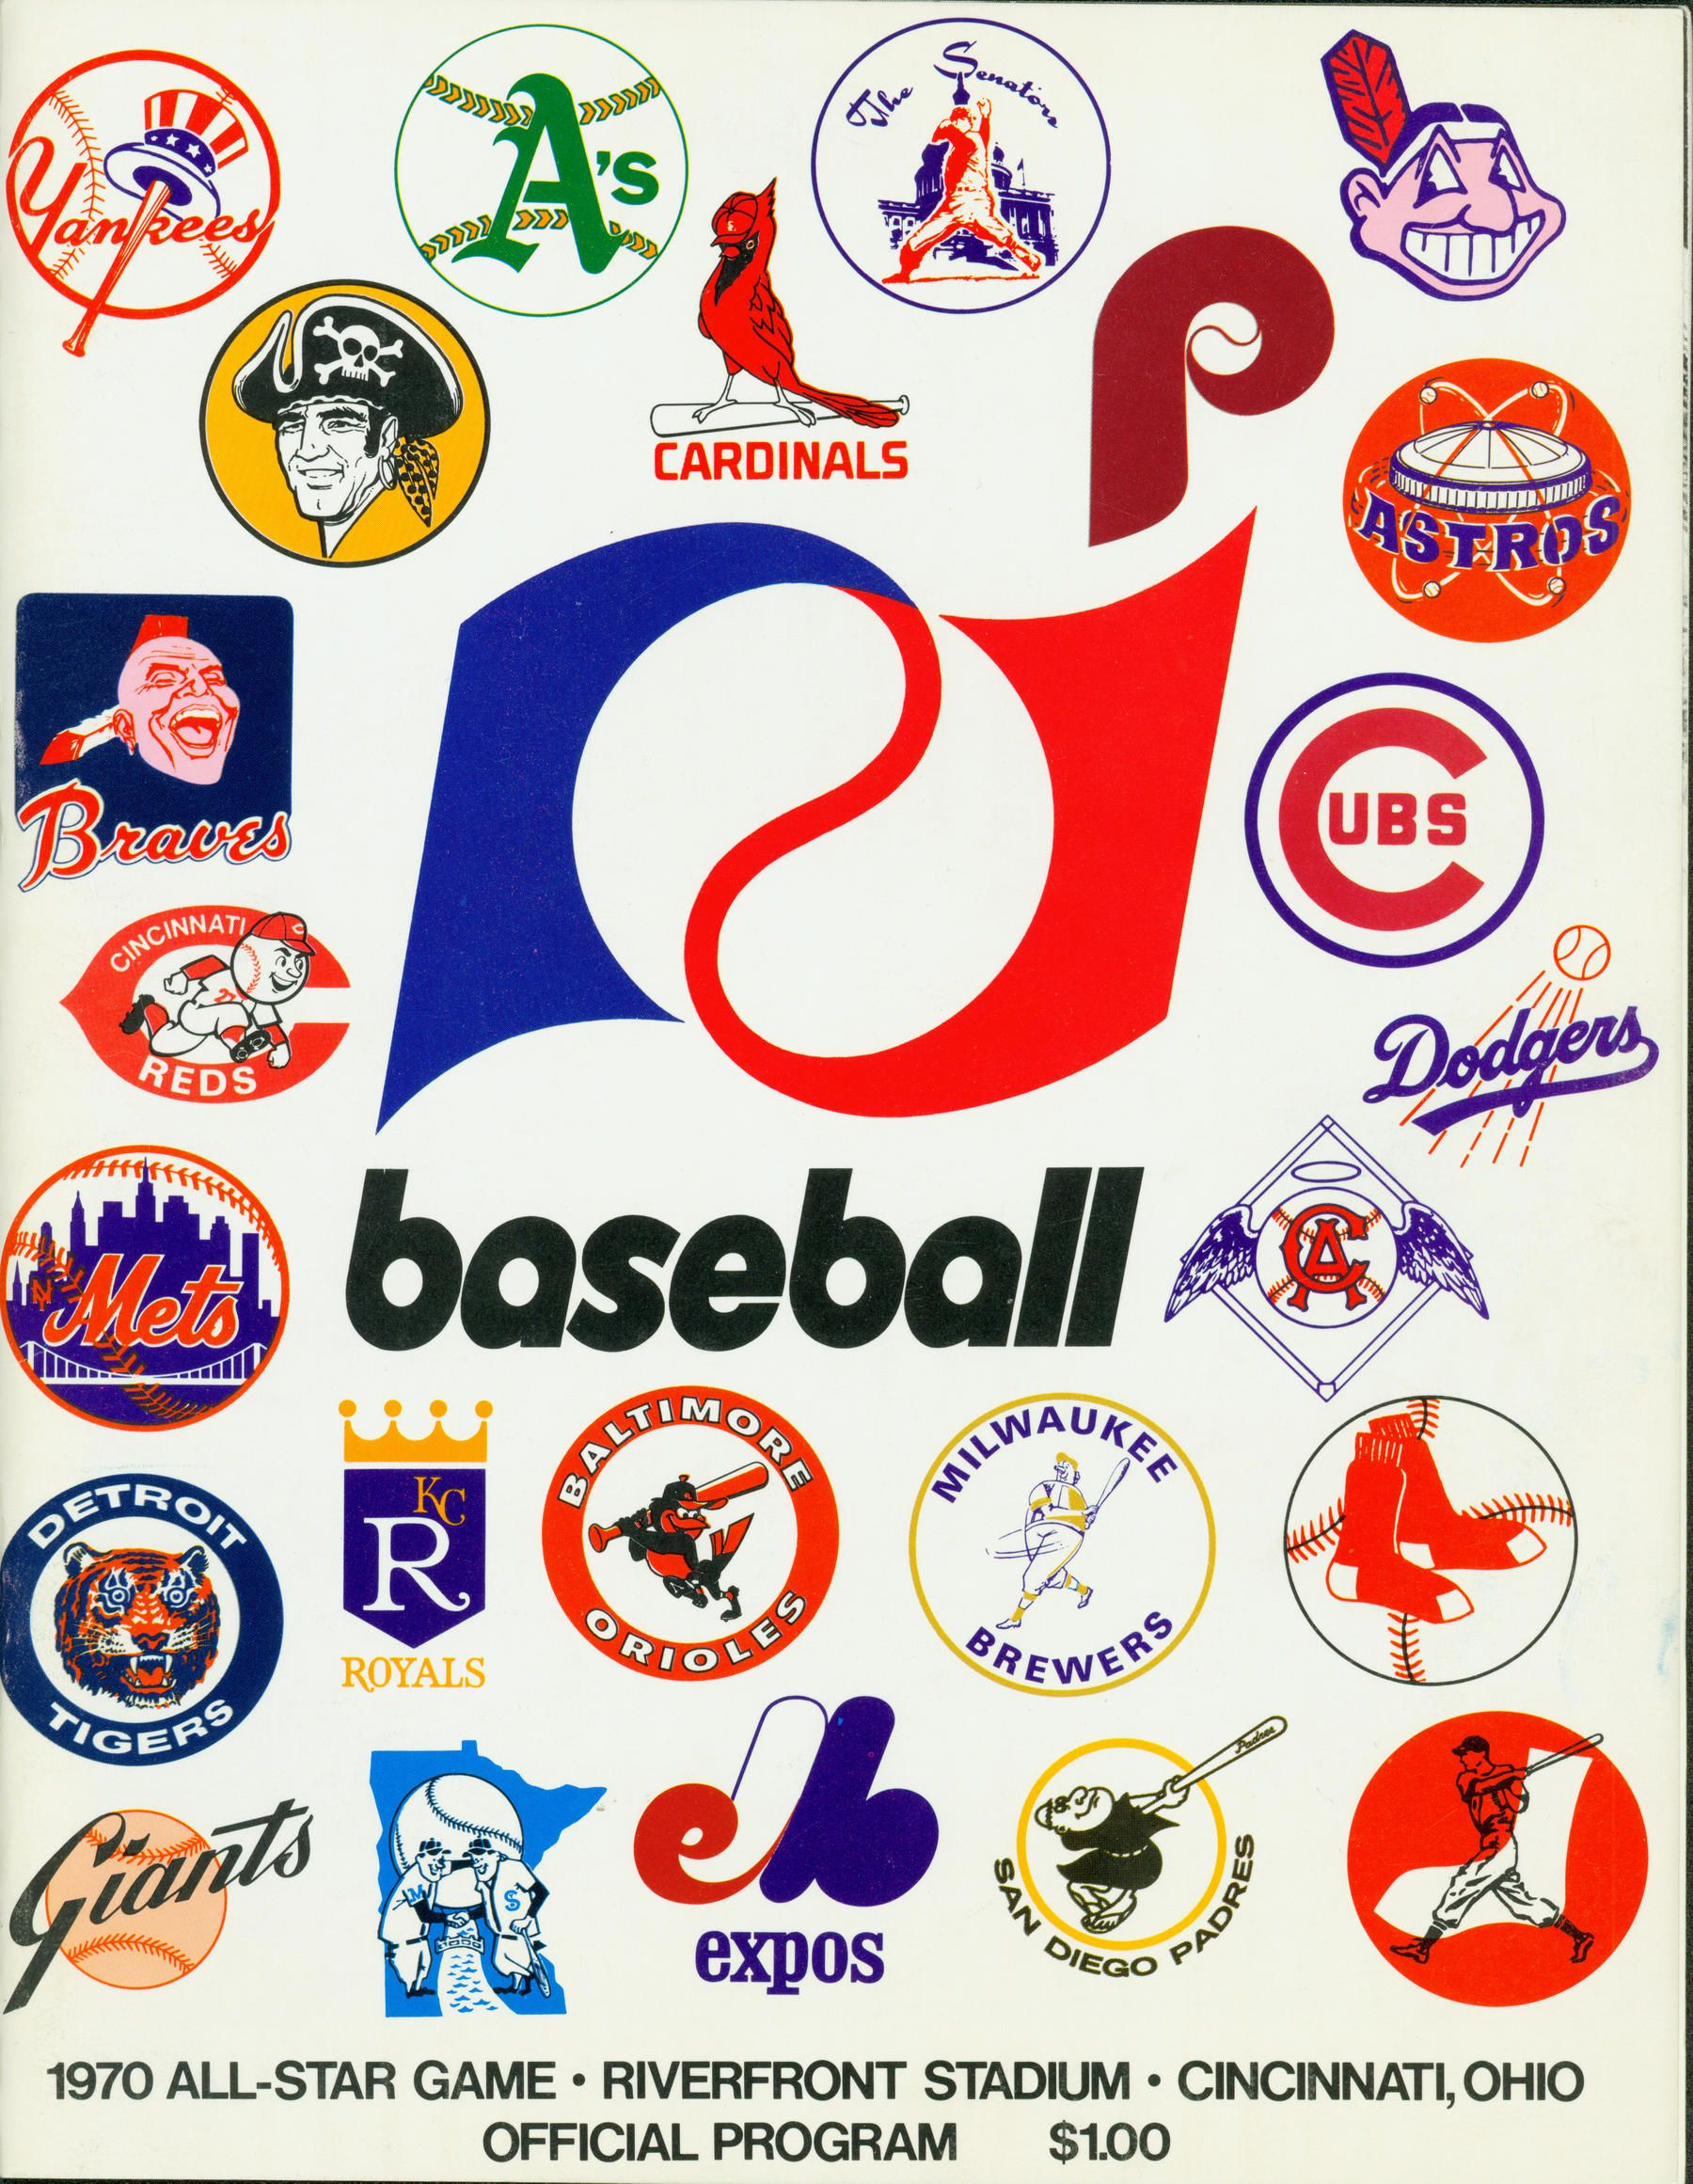 In The Nick Of Time Baseball classic, Mlb teams